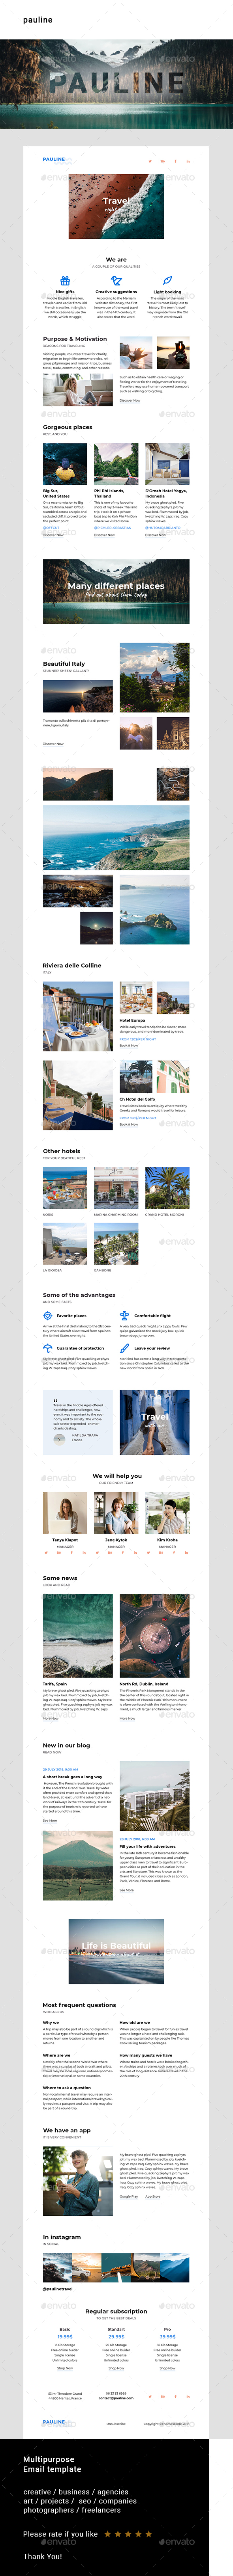 Pauline – Multipurpose Email Template - E-newsletters Web Elements